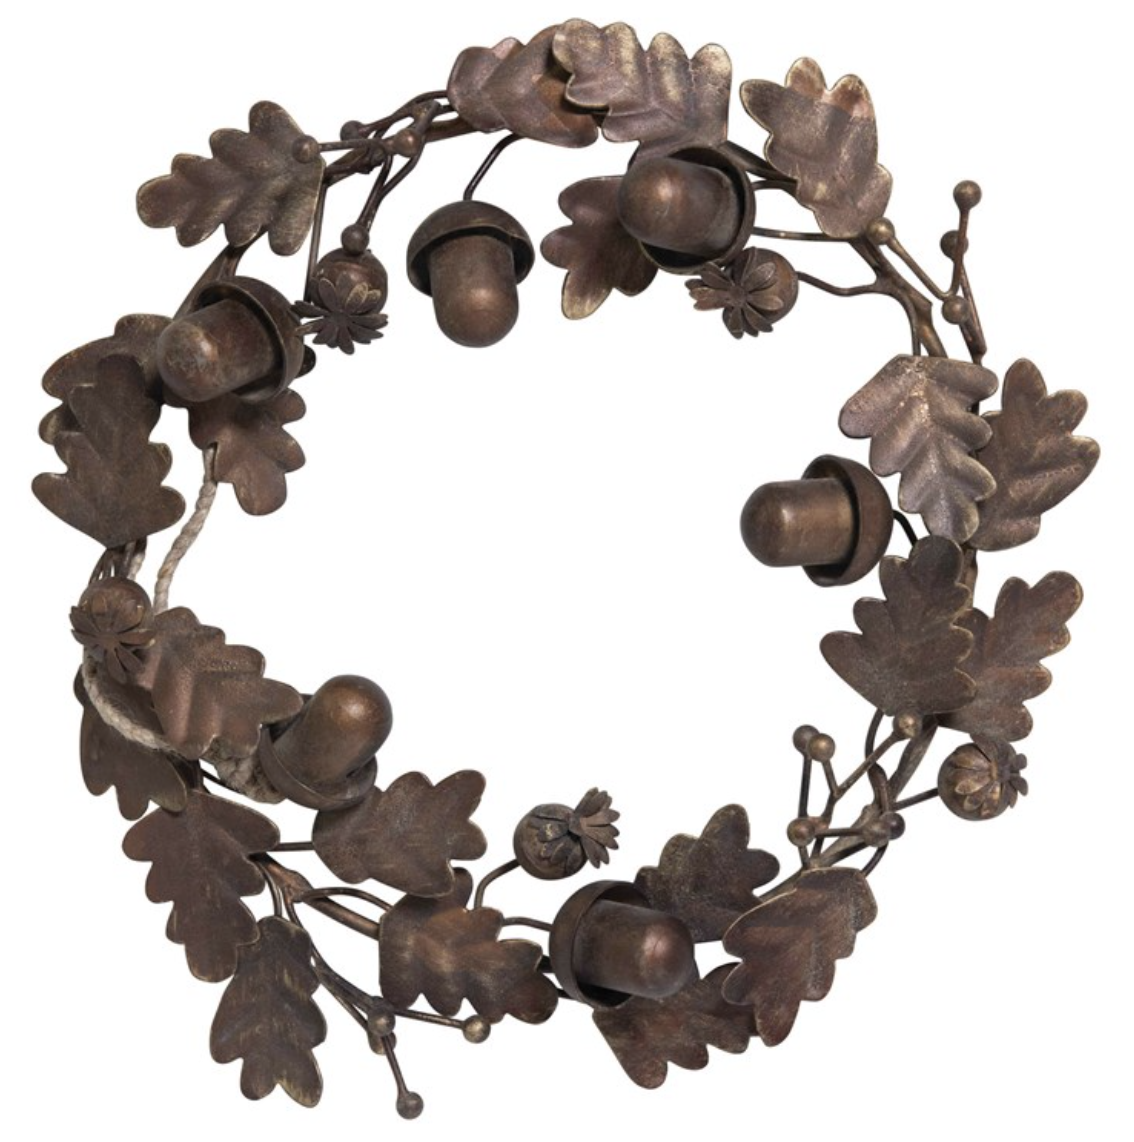 Metal Wreath: Leaves & Acorns, Bronze Finish